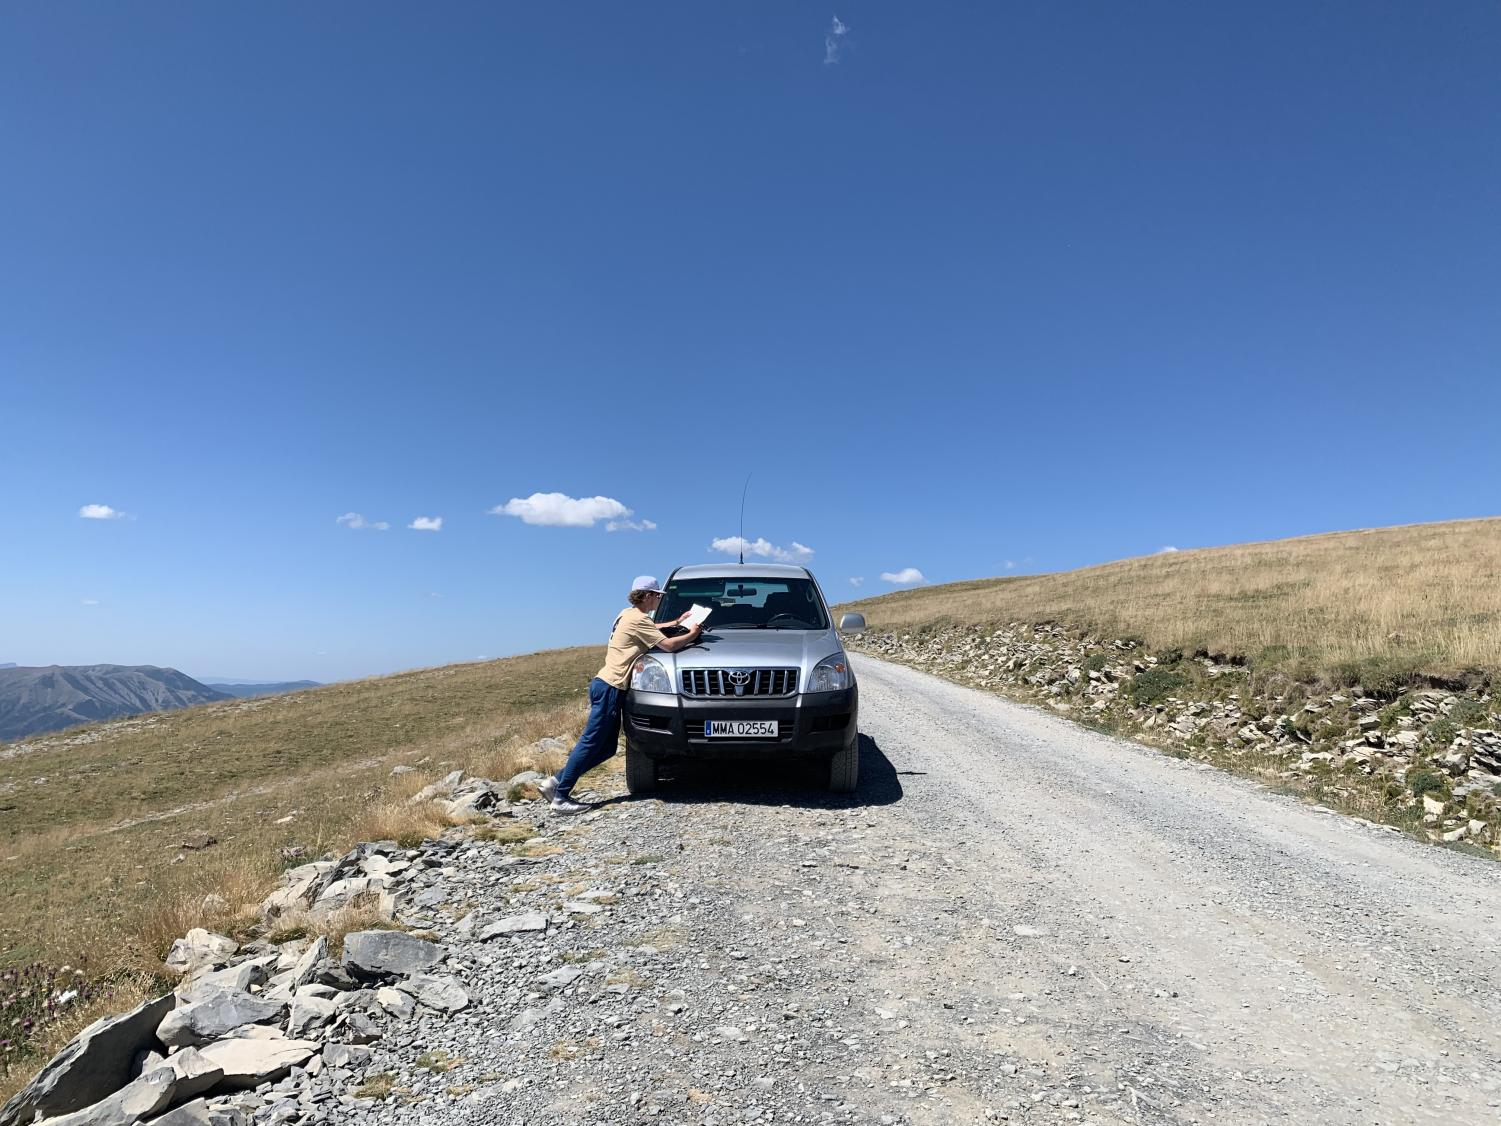 Eli+Putnam+completes+his+summer+reading+at+high+altitude.+He+was+recovering+from+a+long+day+of+hiking+in+the+Pyrenees+Mountains+with+members+of+the+Spanish+Park+Service.